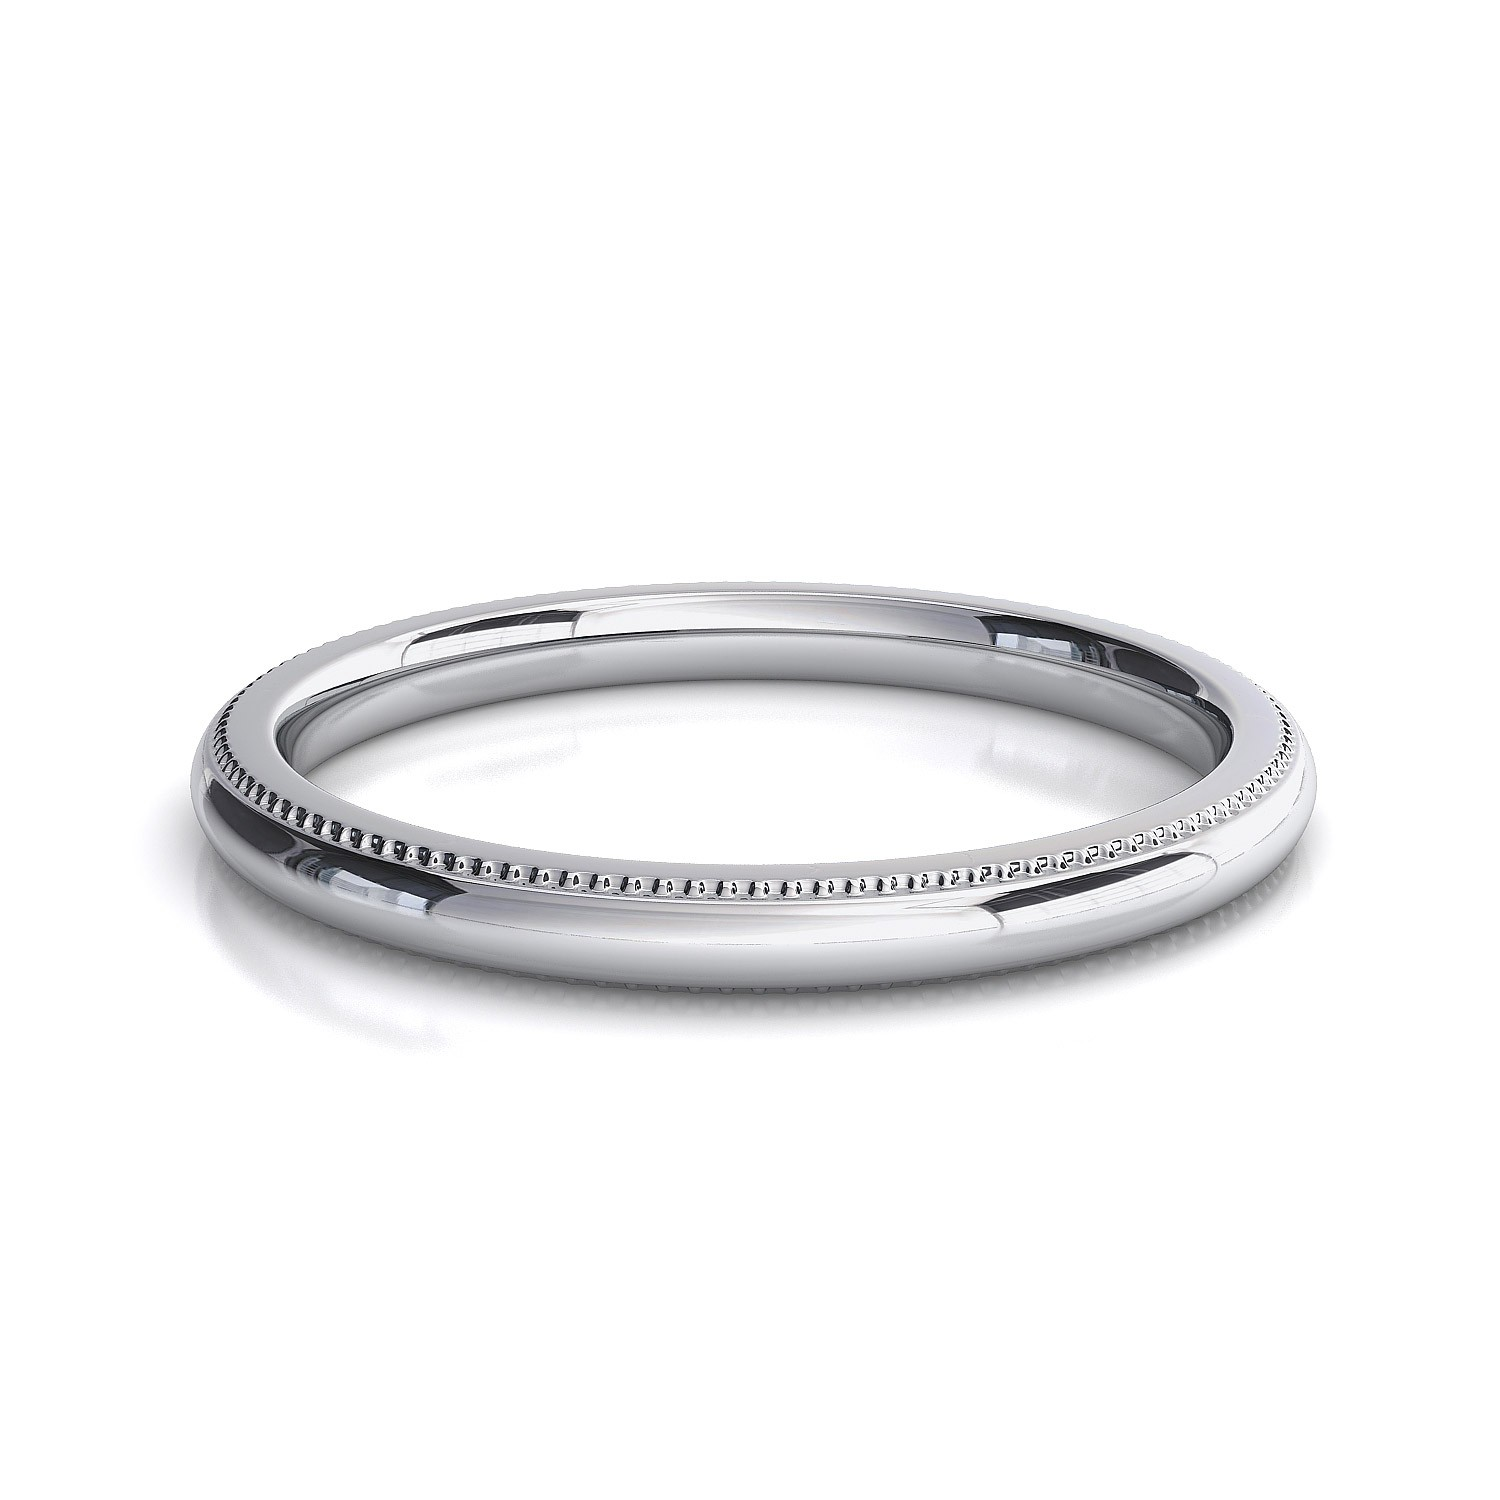 grooved jewelry fit wedding band white comfort gold mens in nl platinum milgrain fascinating wg bands